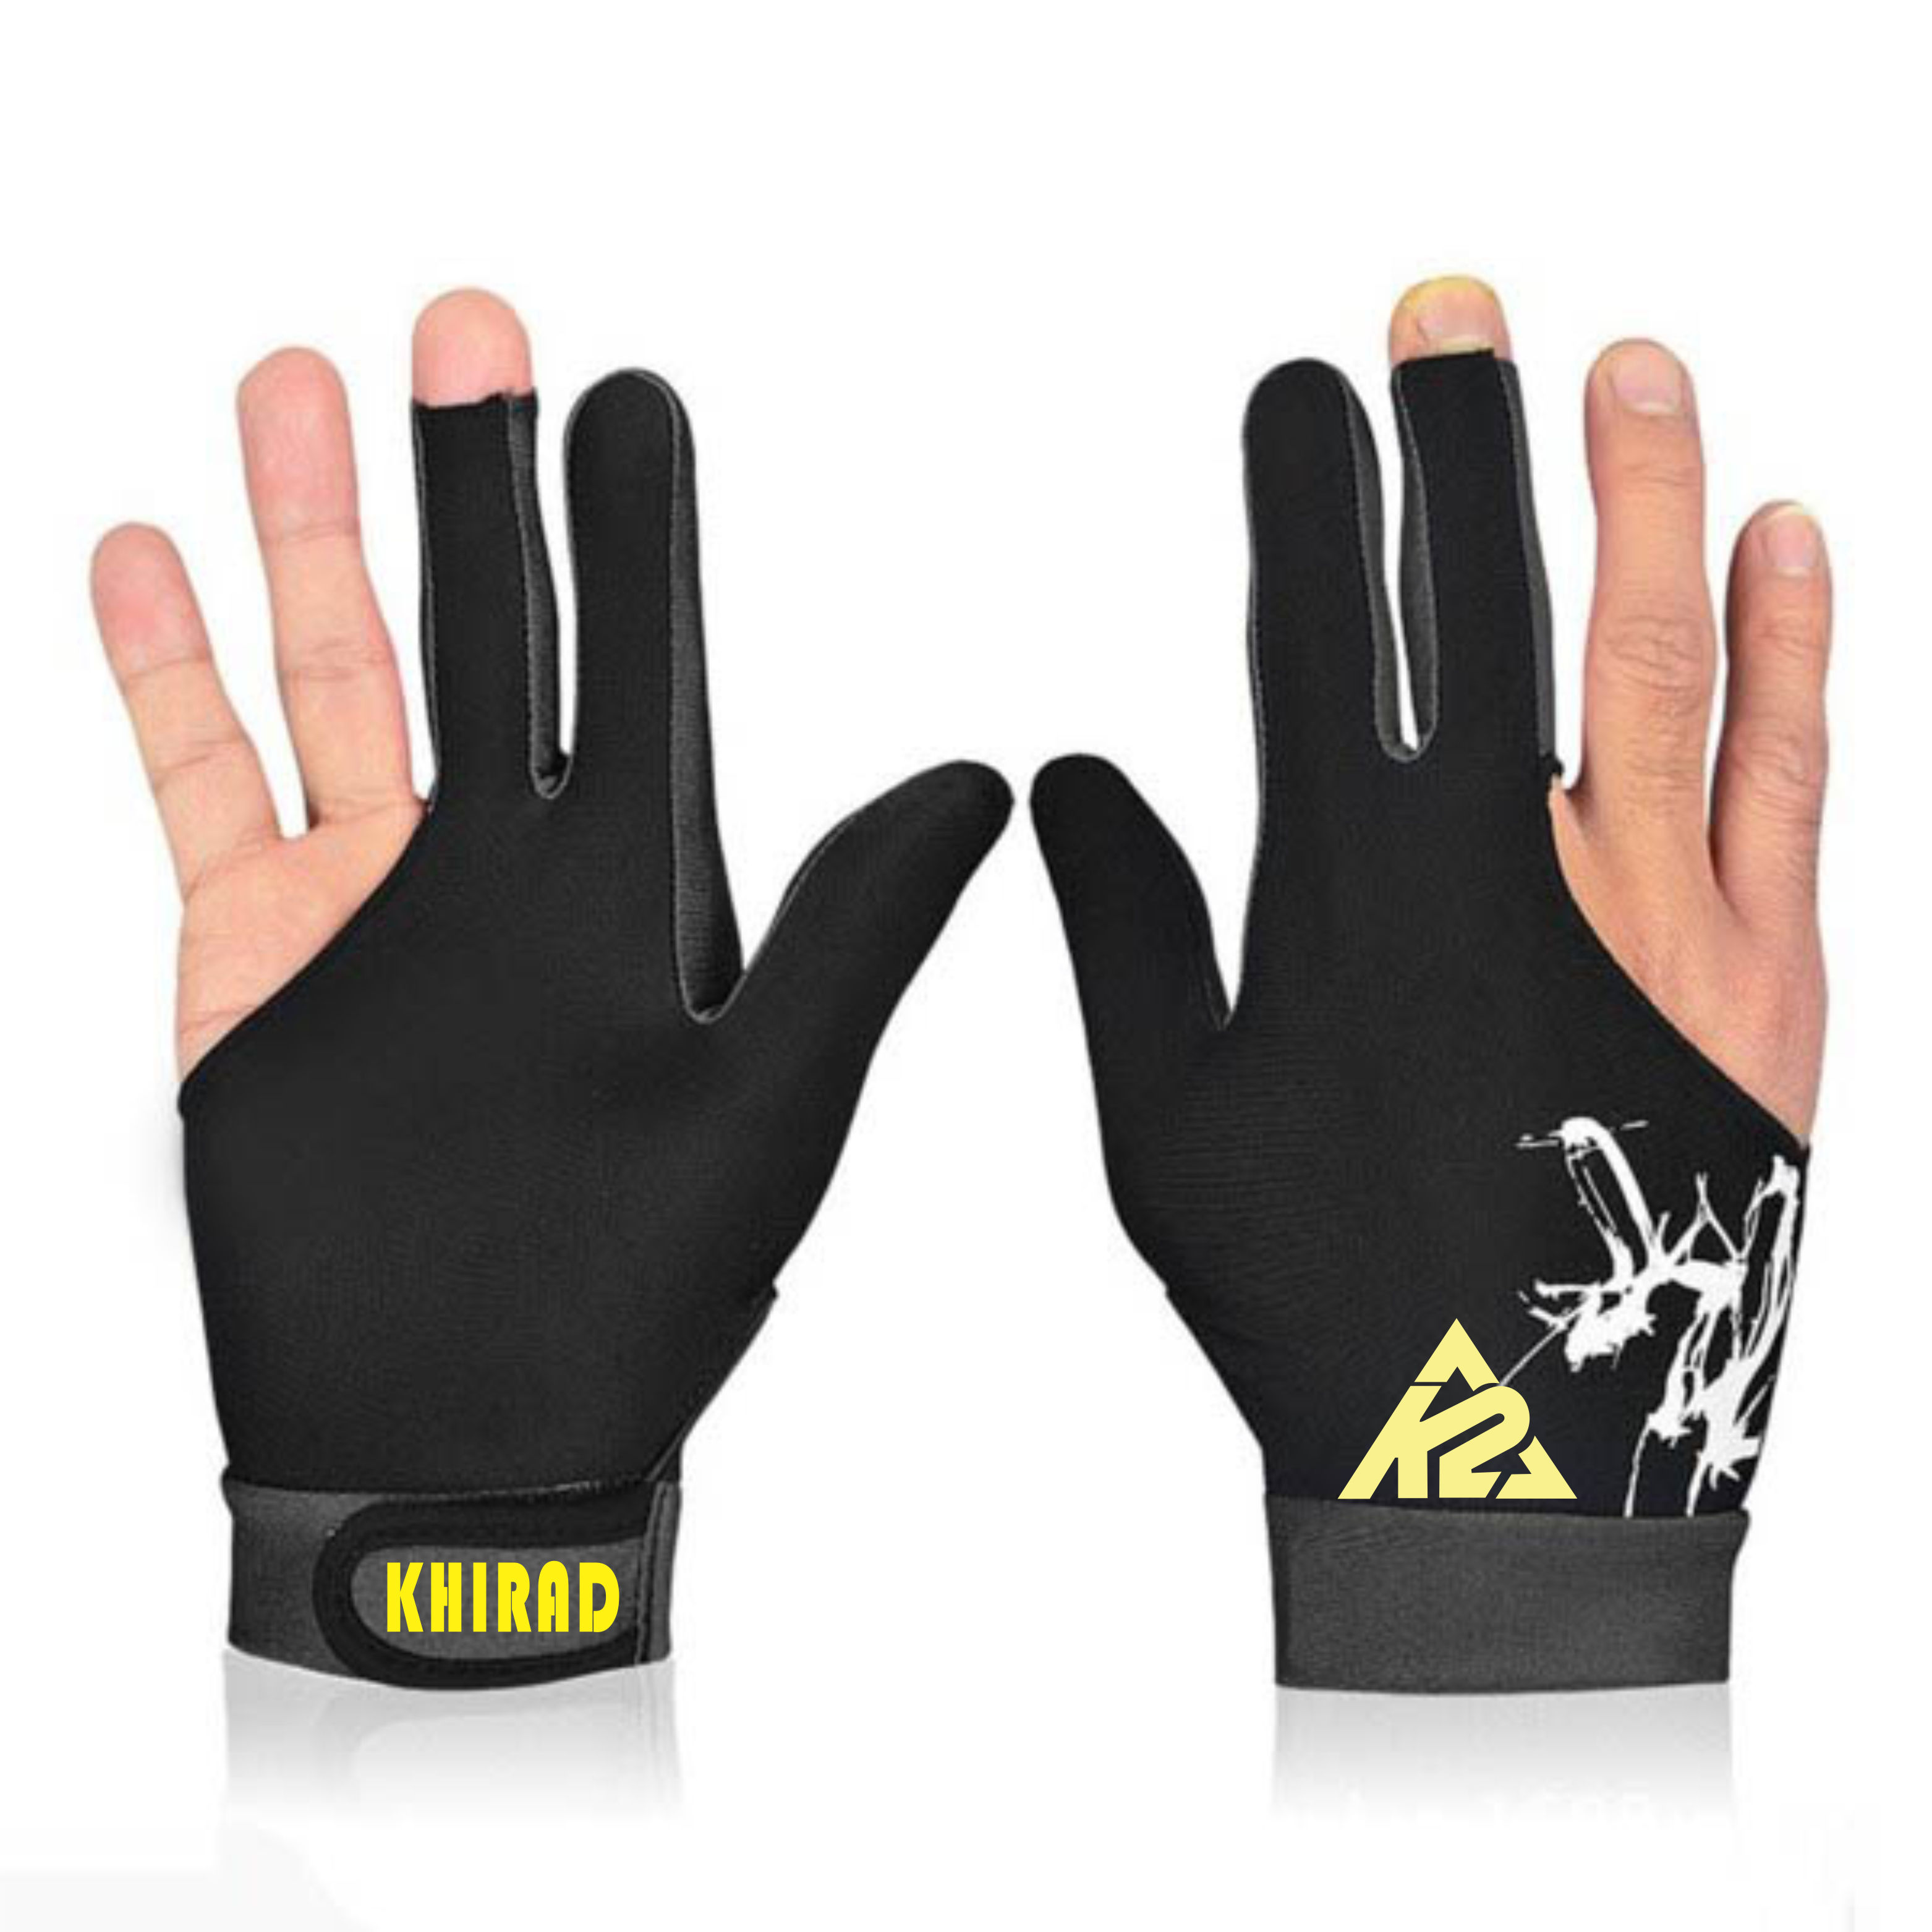 New Style 2020 Wholesale Custom 3 Finger Pool Billiard Gloves With Made Lycra.